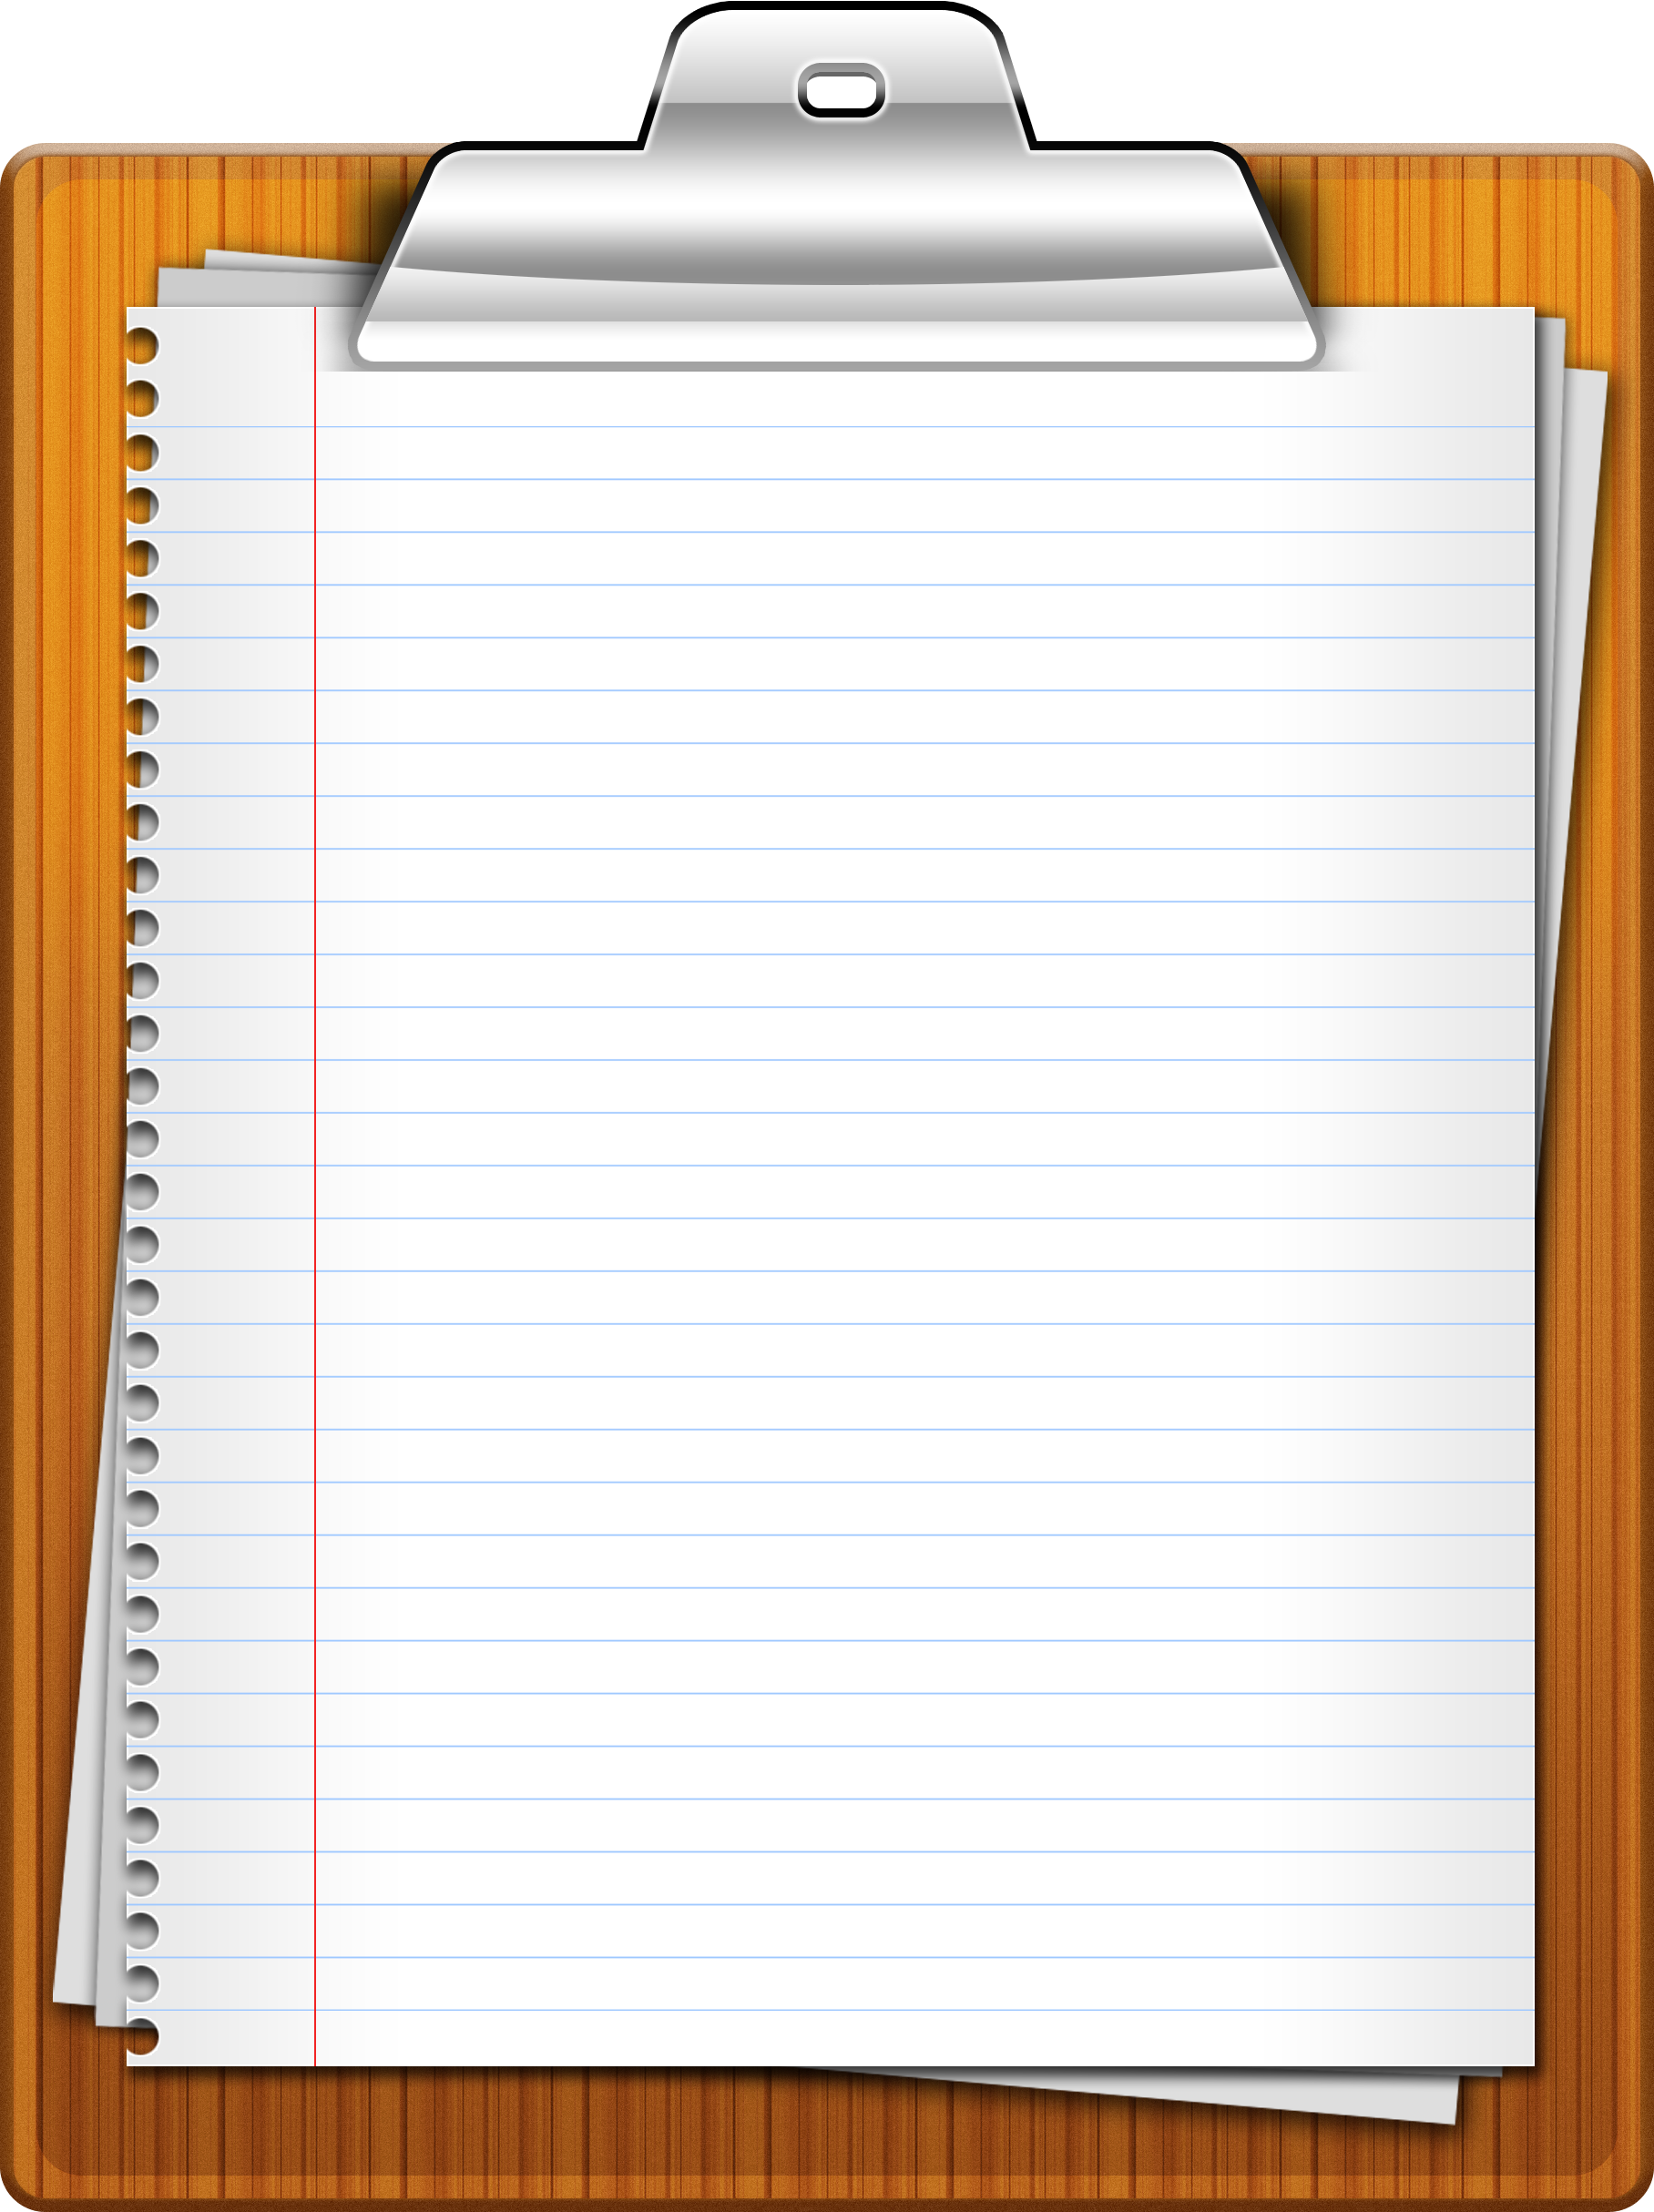 Download Free png Clipboard Icon.